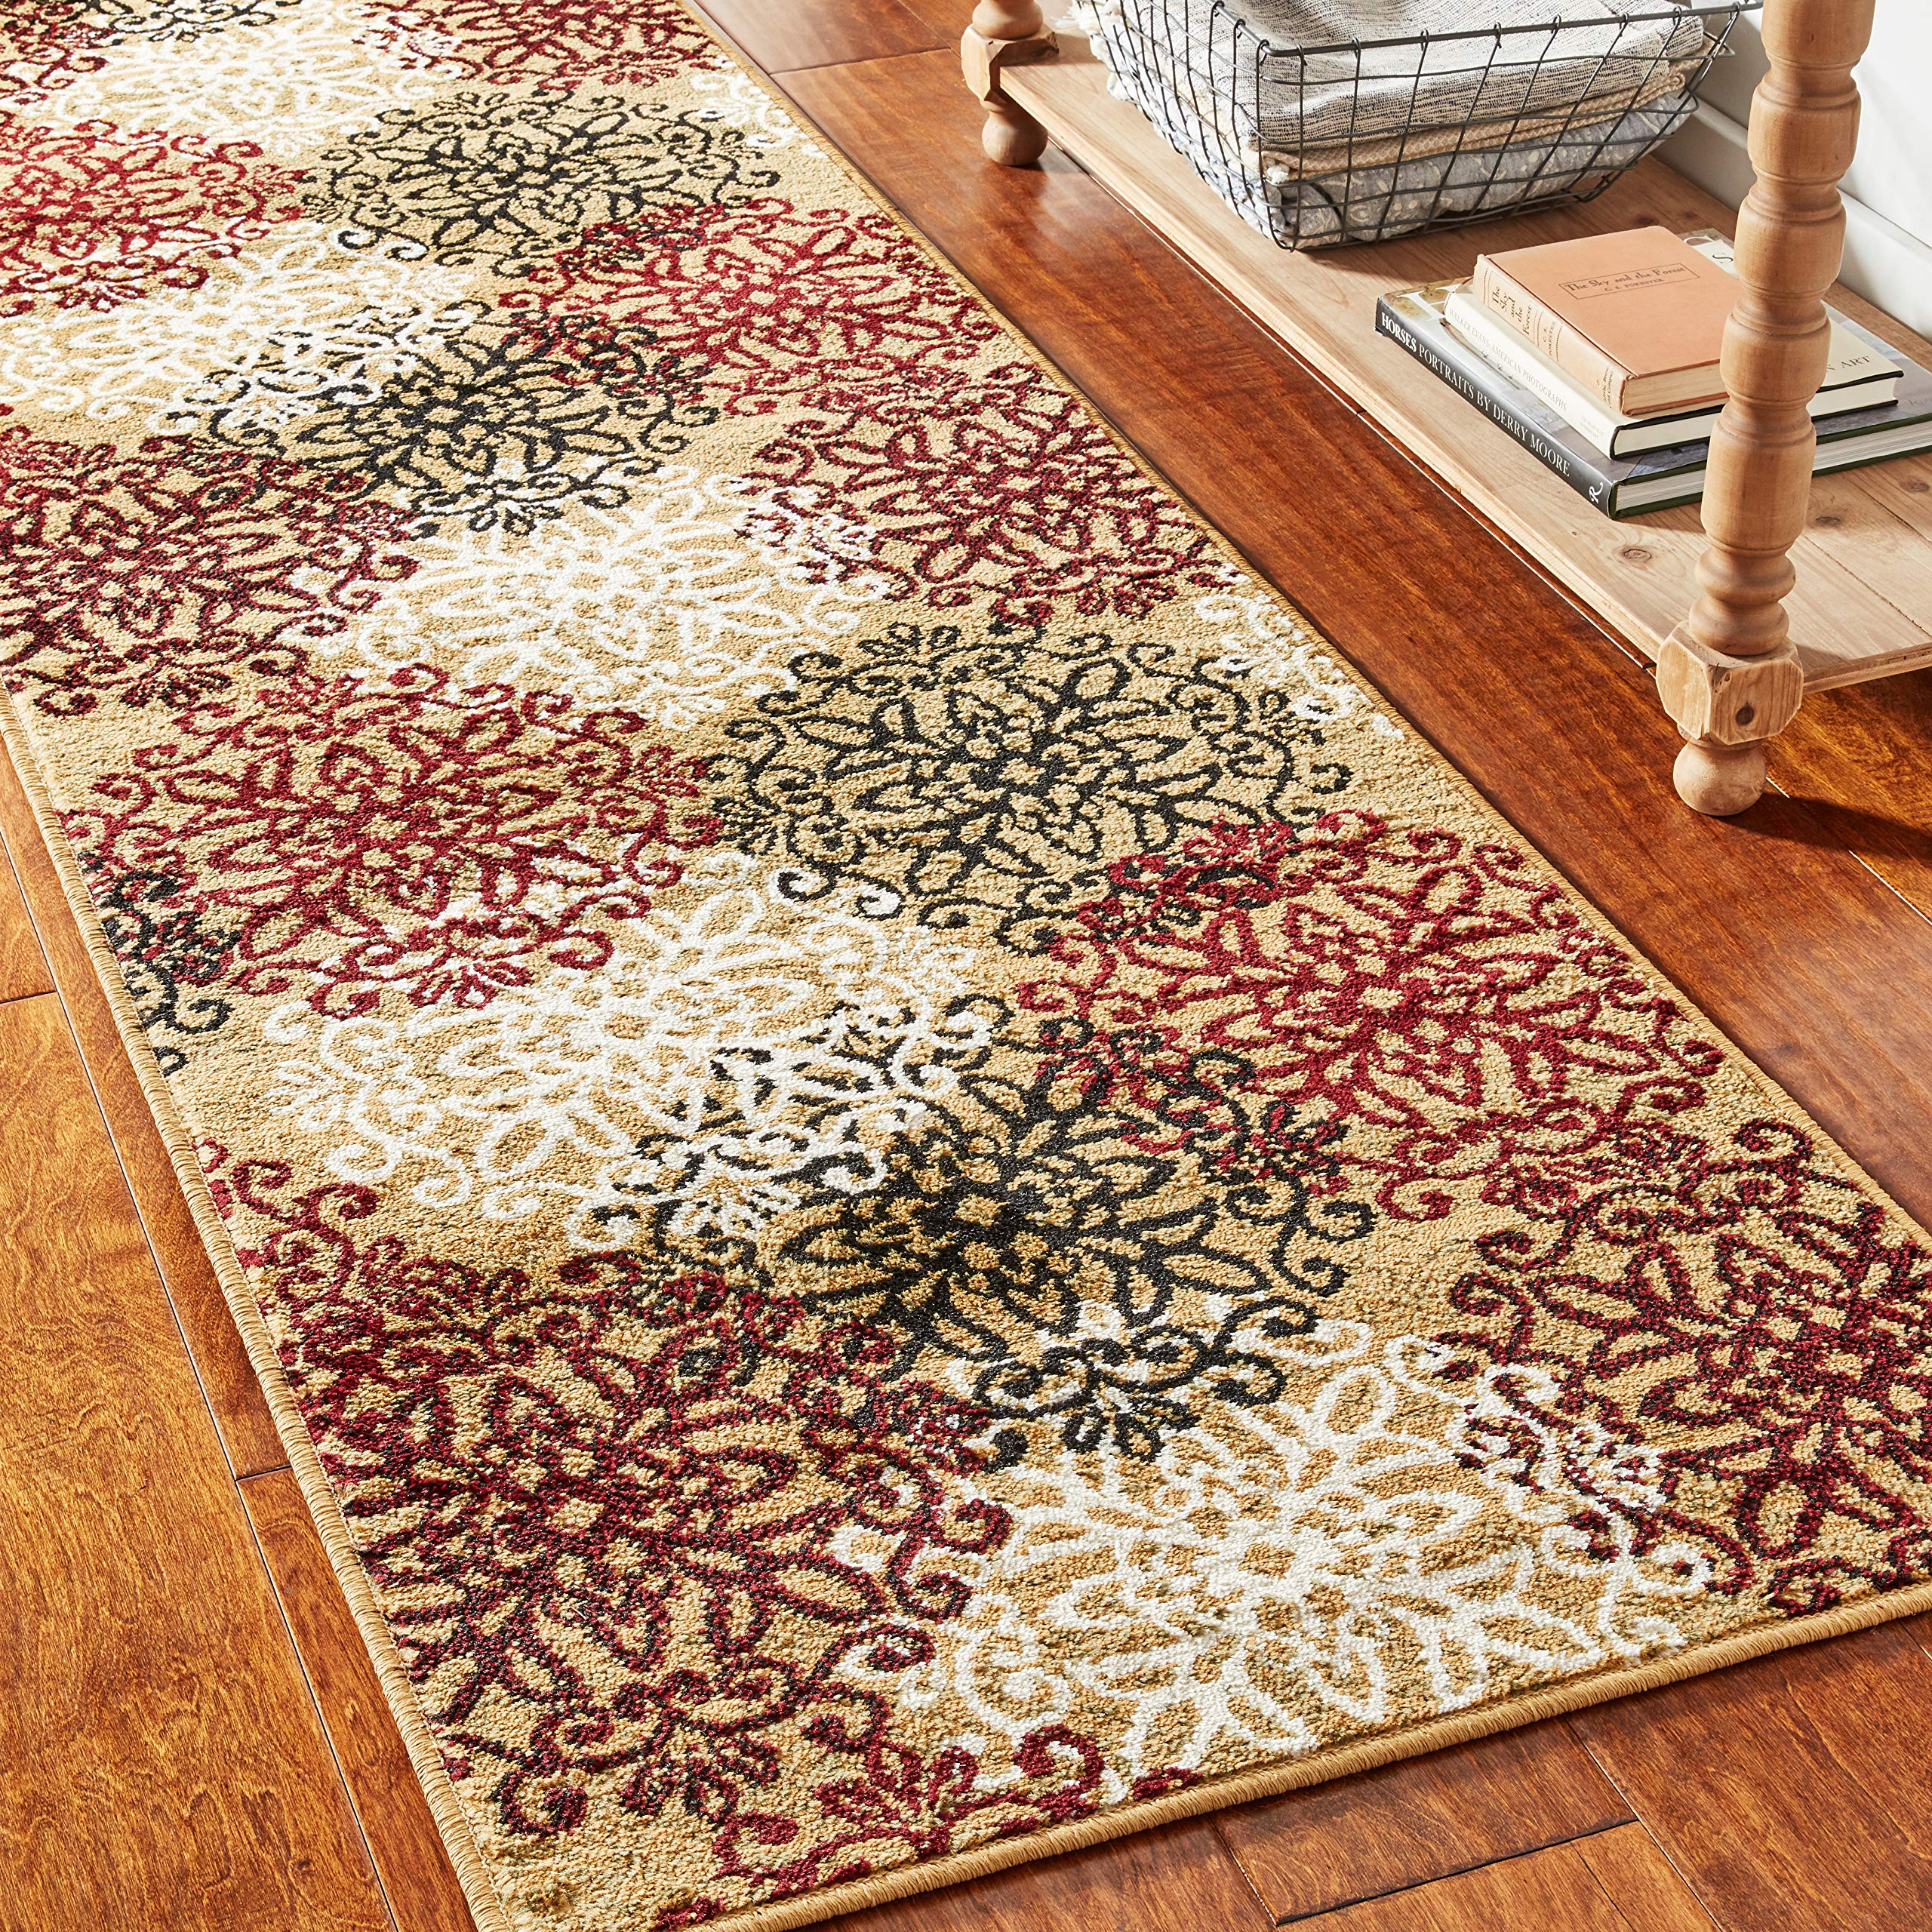 """Superior 8mm Pile Height with Jute Backing, Chic Contemporary Floral Medallion Pattern, Anti-Static, Water-Repellent Rugs, 2'7"""" x 8' Runner, Gold"""